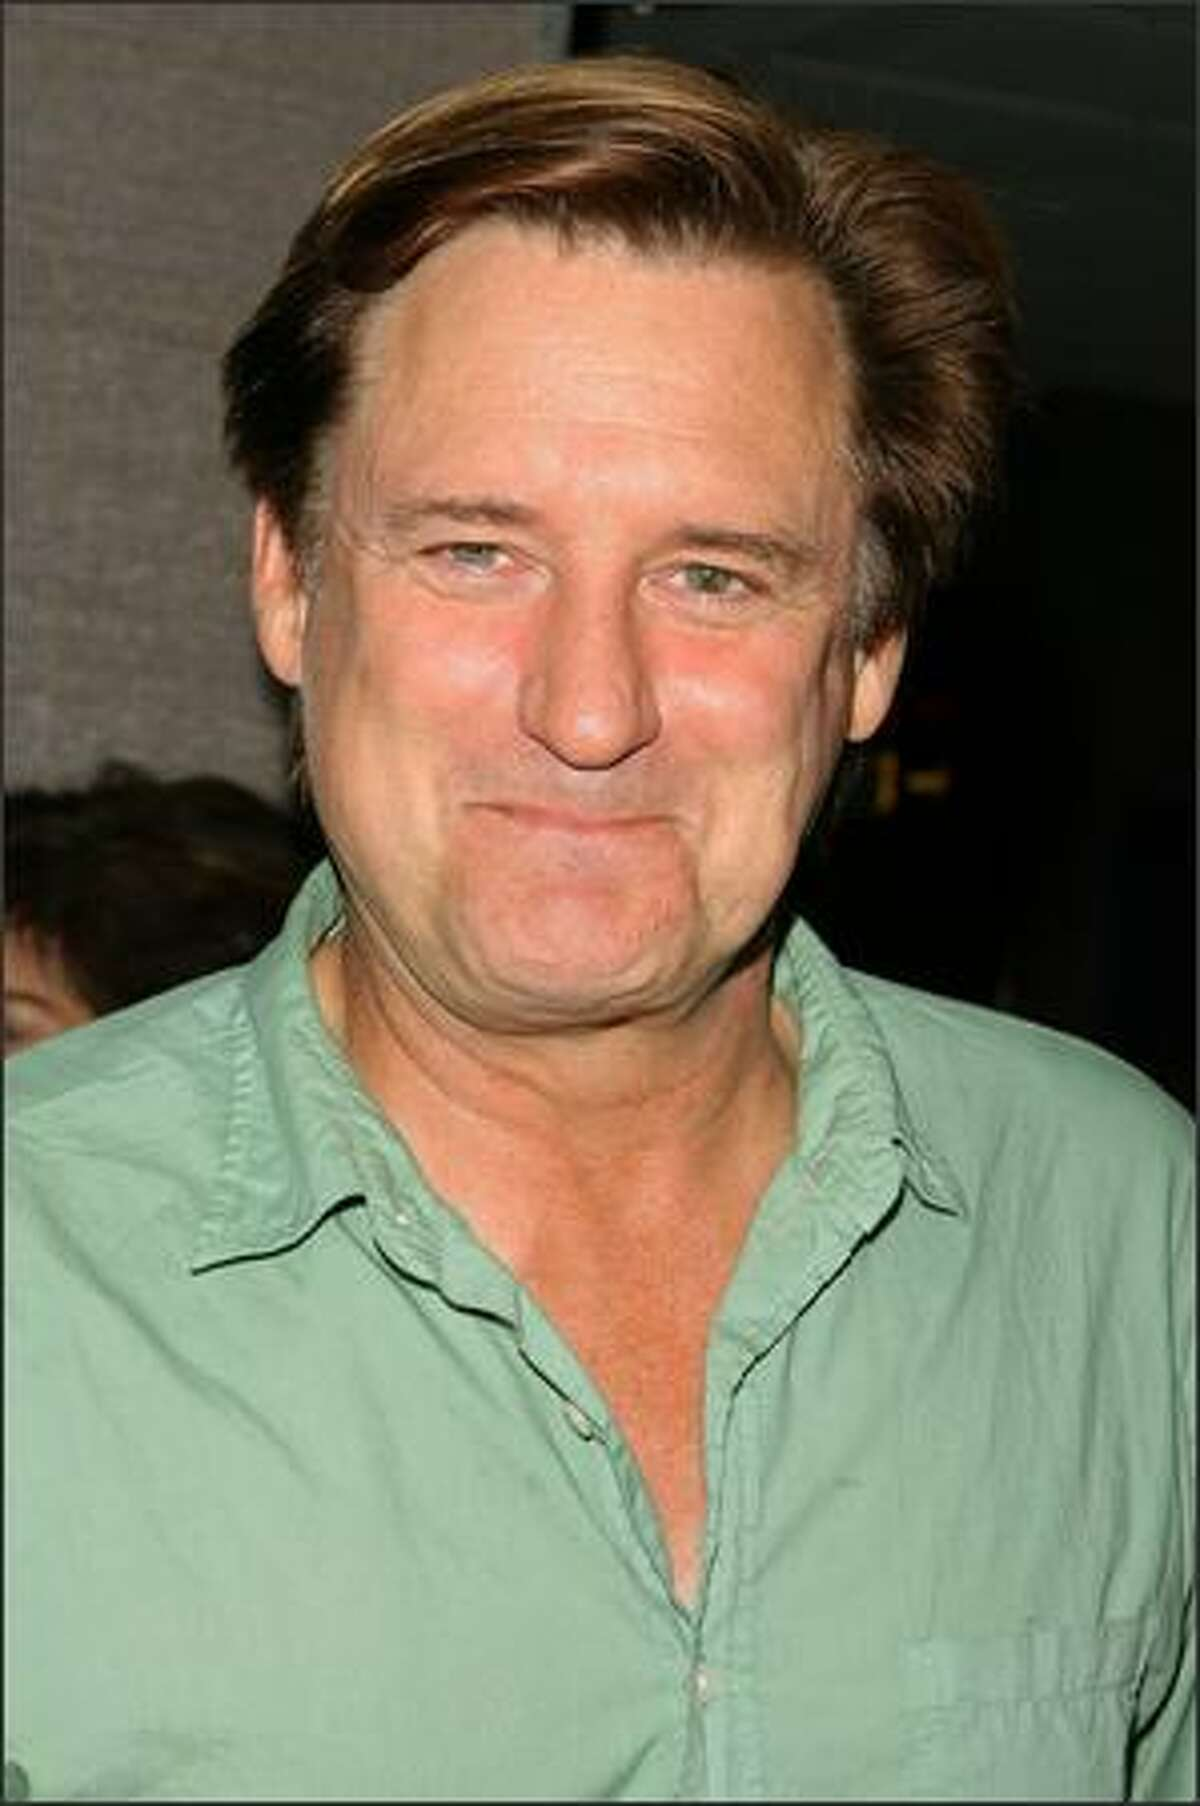 Actor Bill Pullman arrives at the premiere of